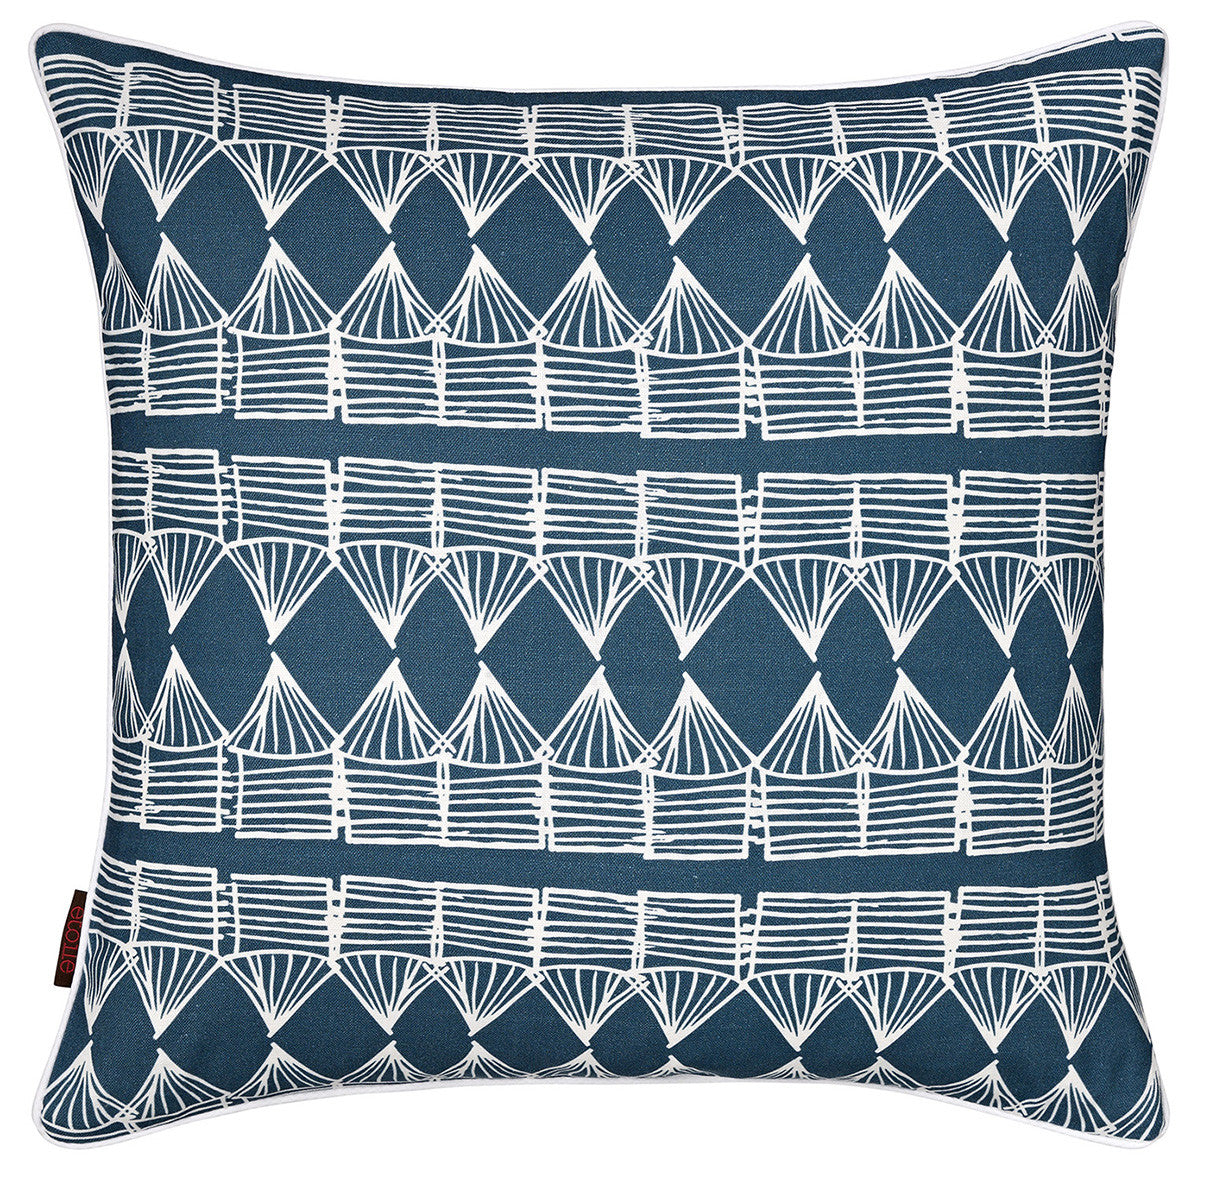 "Tiki Huts Pattern Linen Cotton Throw Pillow Cushion in Dark Petrol Blue 45x45cm 18x18"" ships from Canada worldwide including the USA"